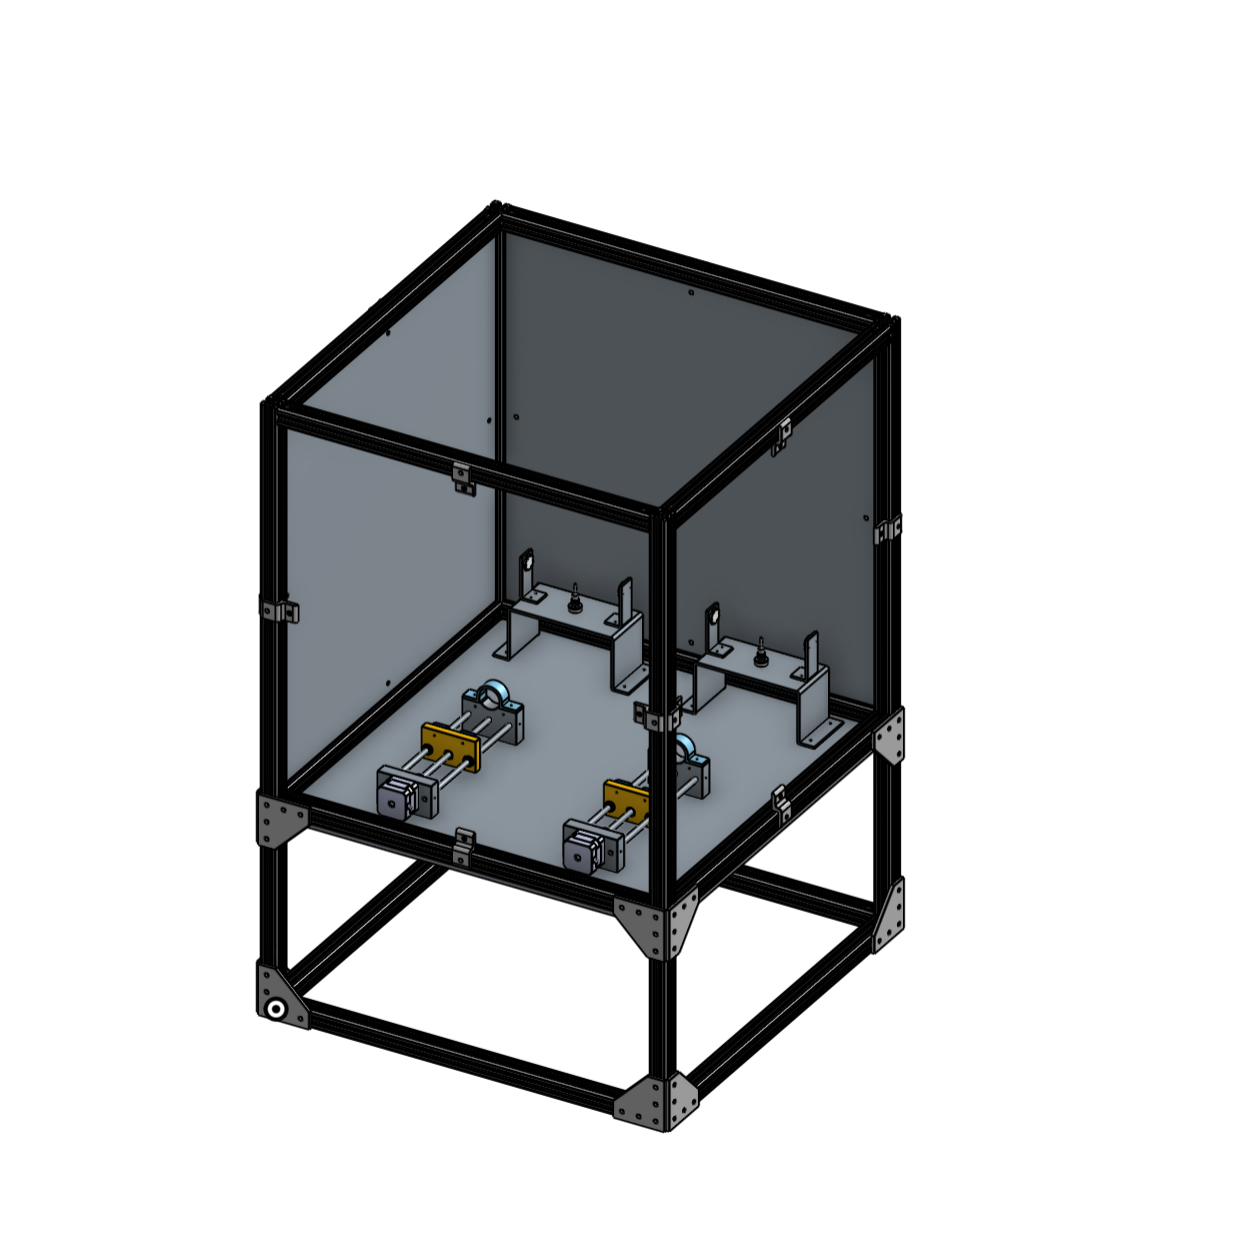 A rough CAD model of the system